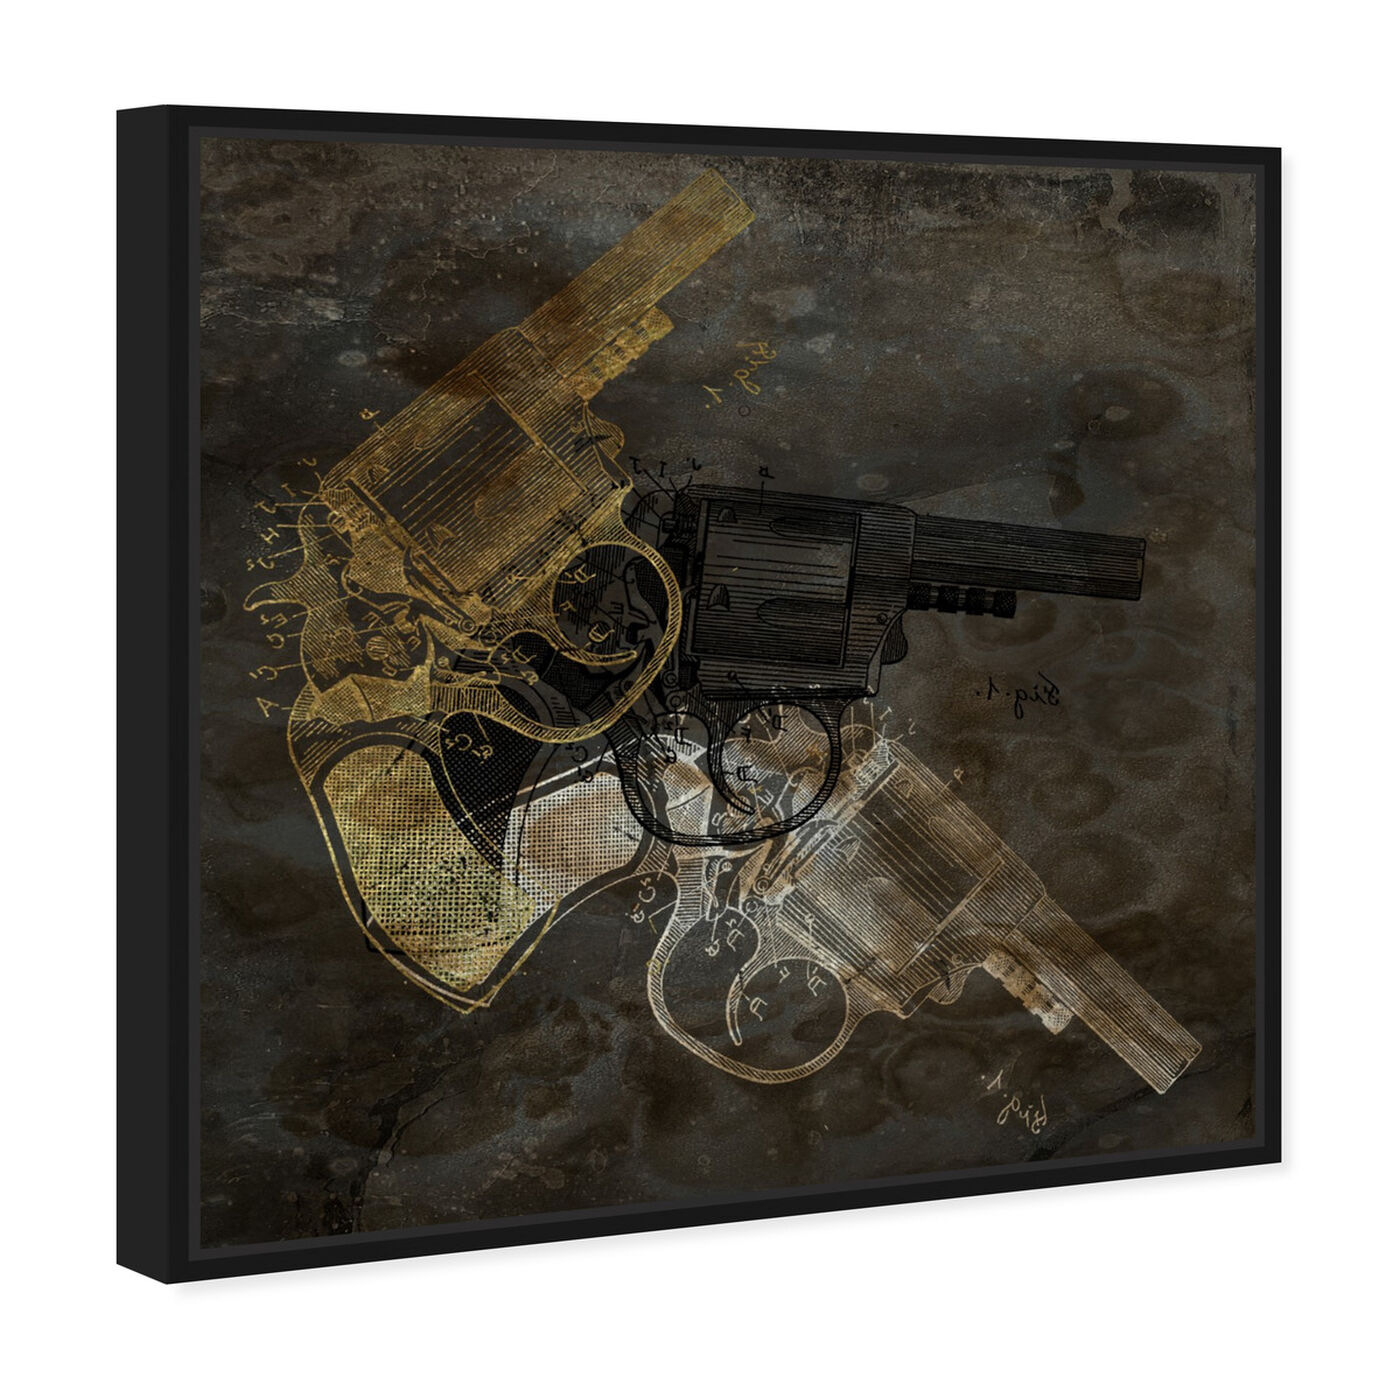 Angled view of Gold Revolver featuring entertainment and hobbies and machine guns art.